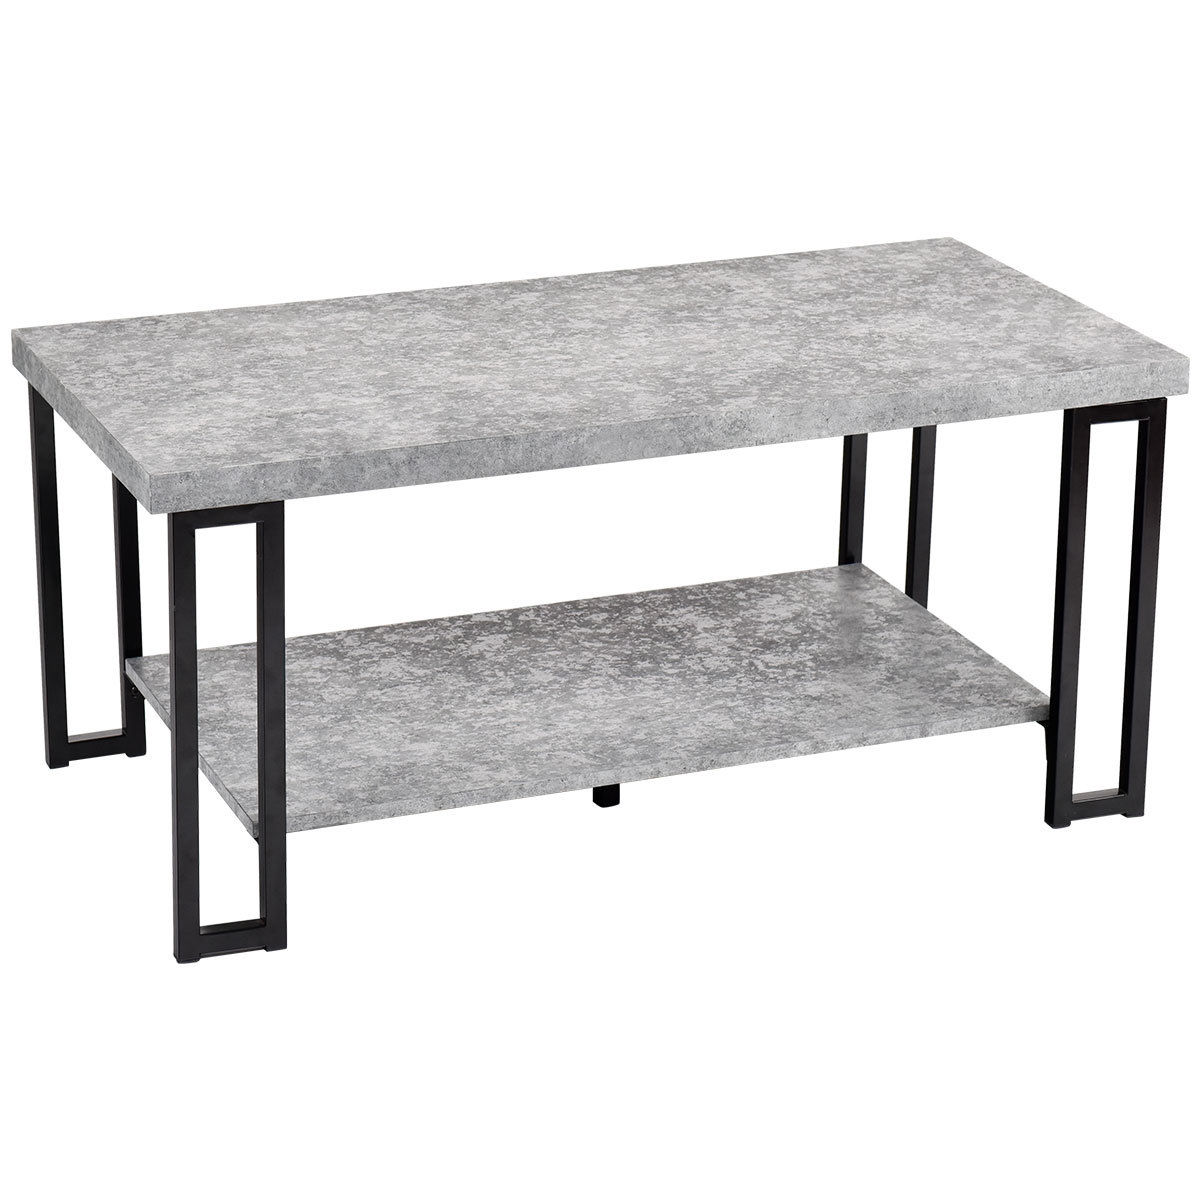 Costway Accent Coffee Table Modern Living Room Furniture Metal Frame W Lower Shelf